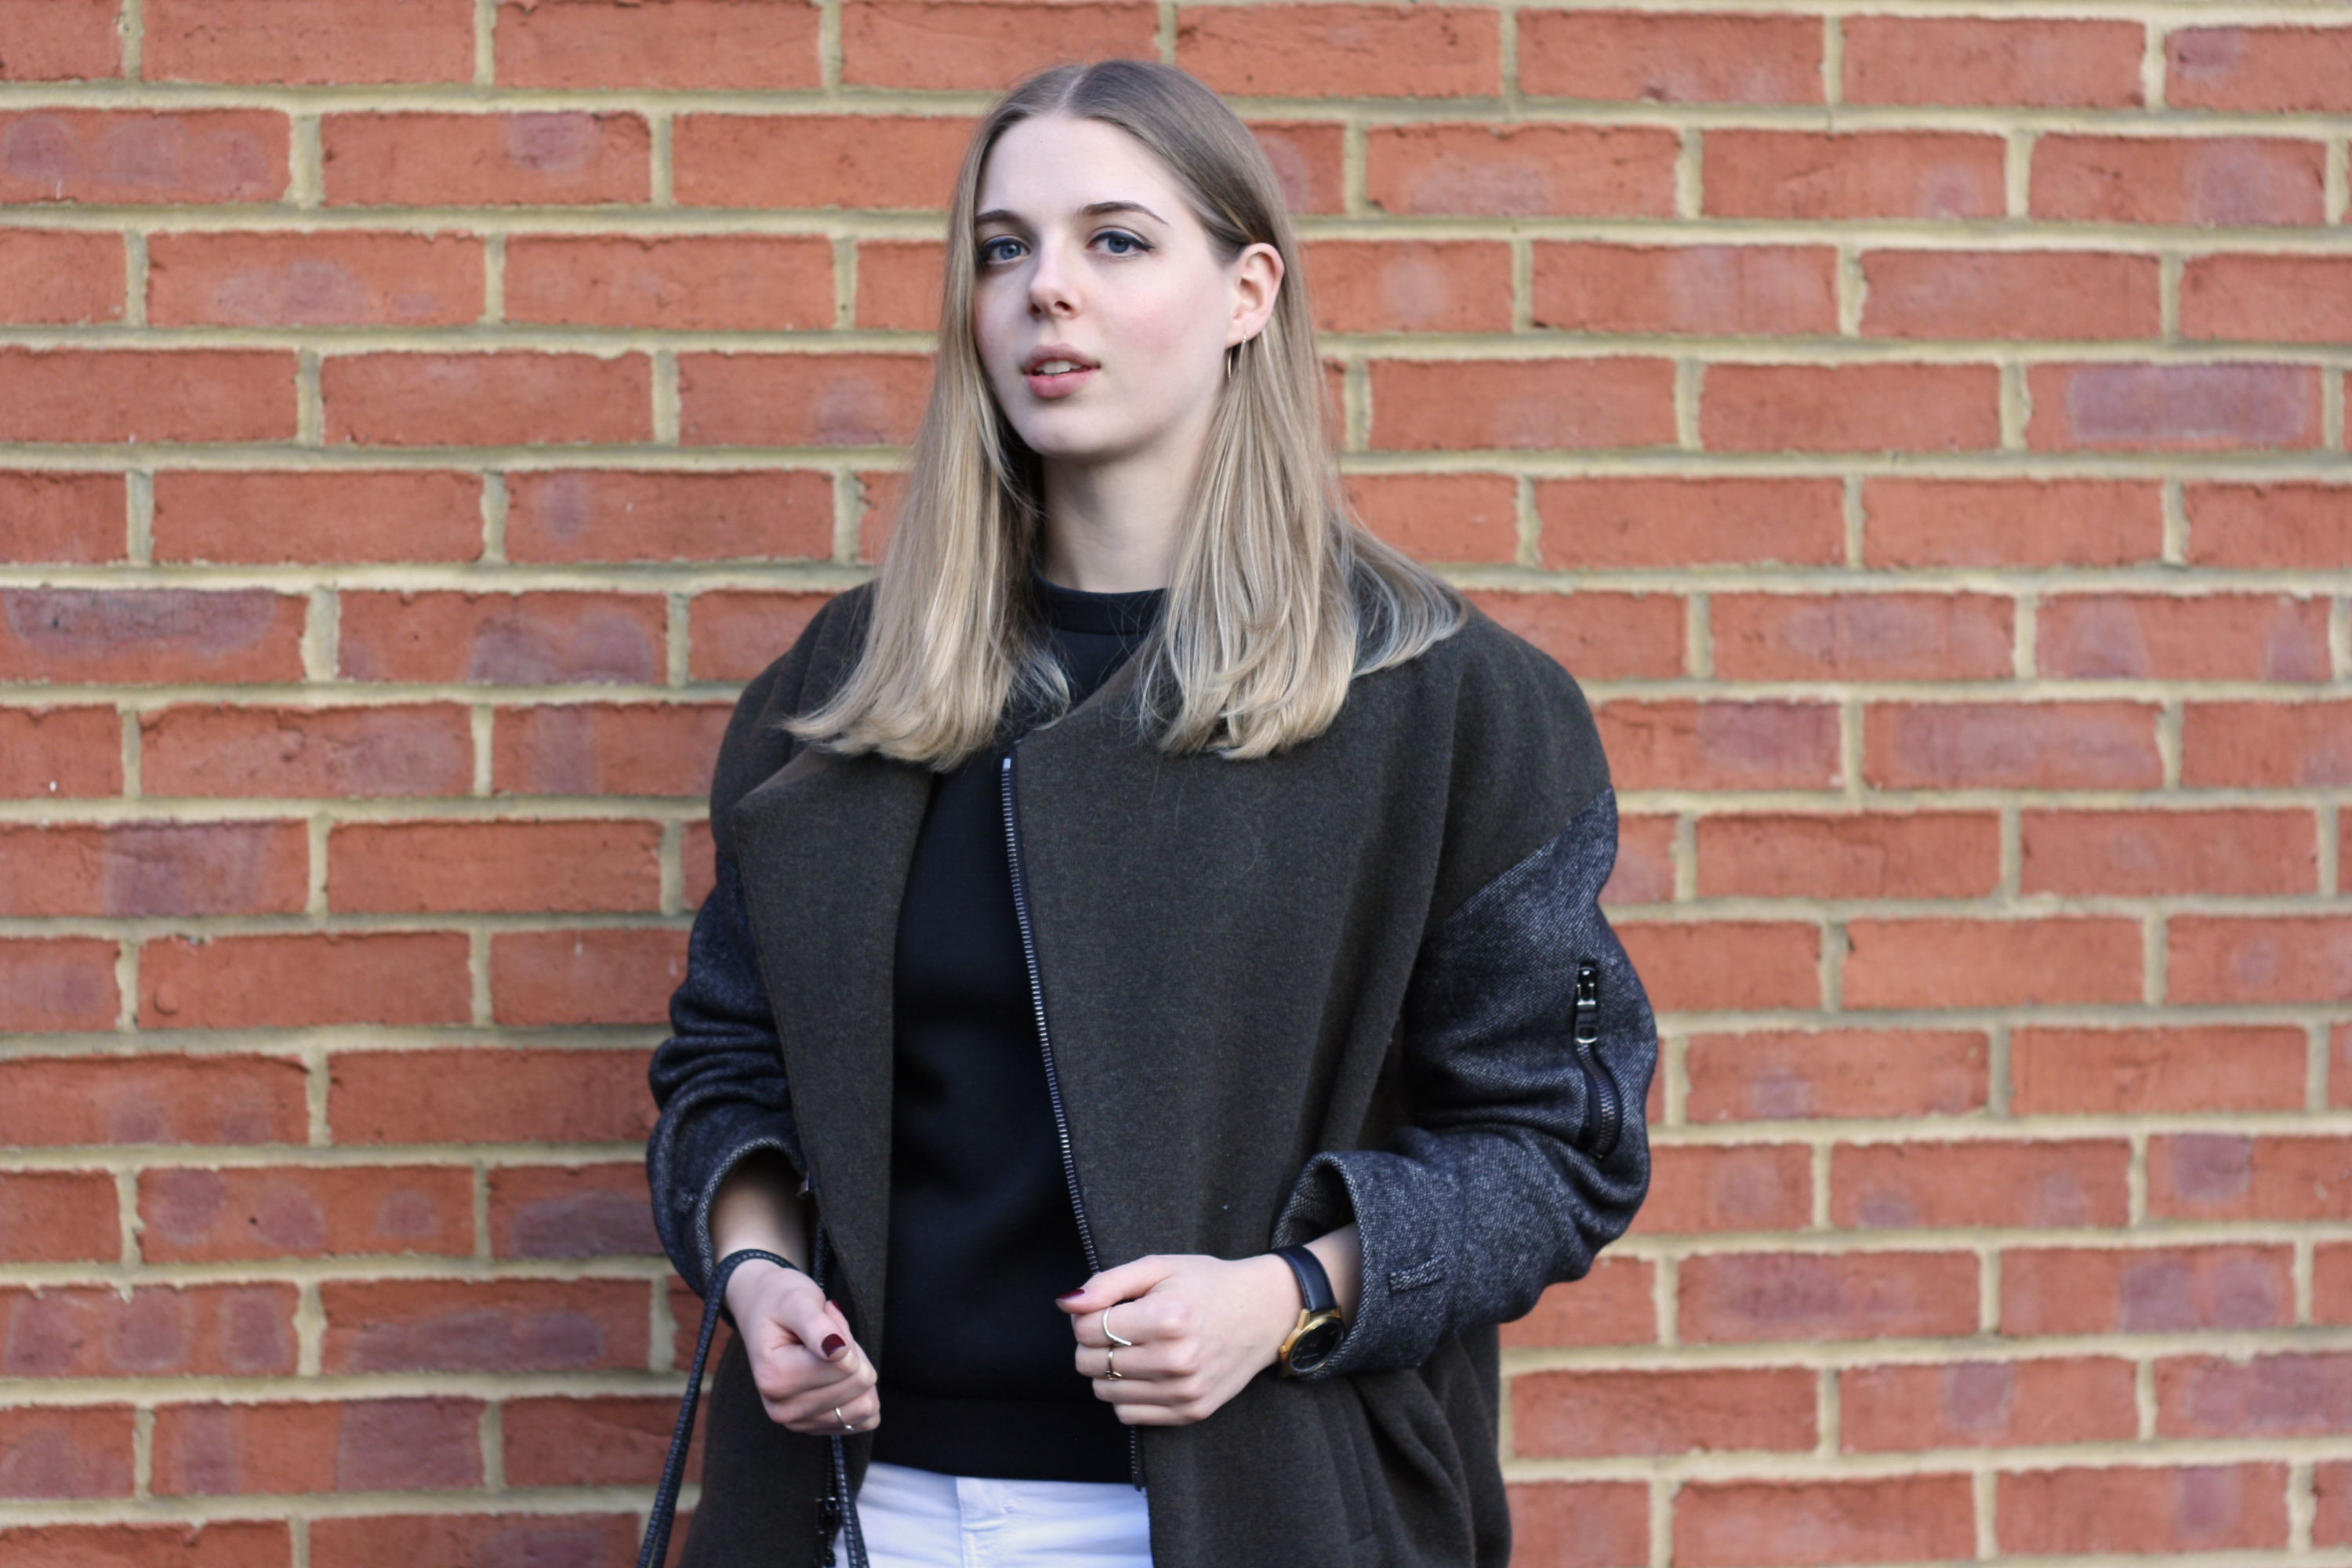 Topshop Unique khaki jacket, ASOS rose gold spike earrings and Larsson Jennings black Saxon watch